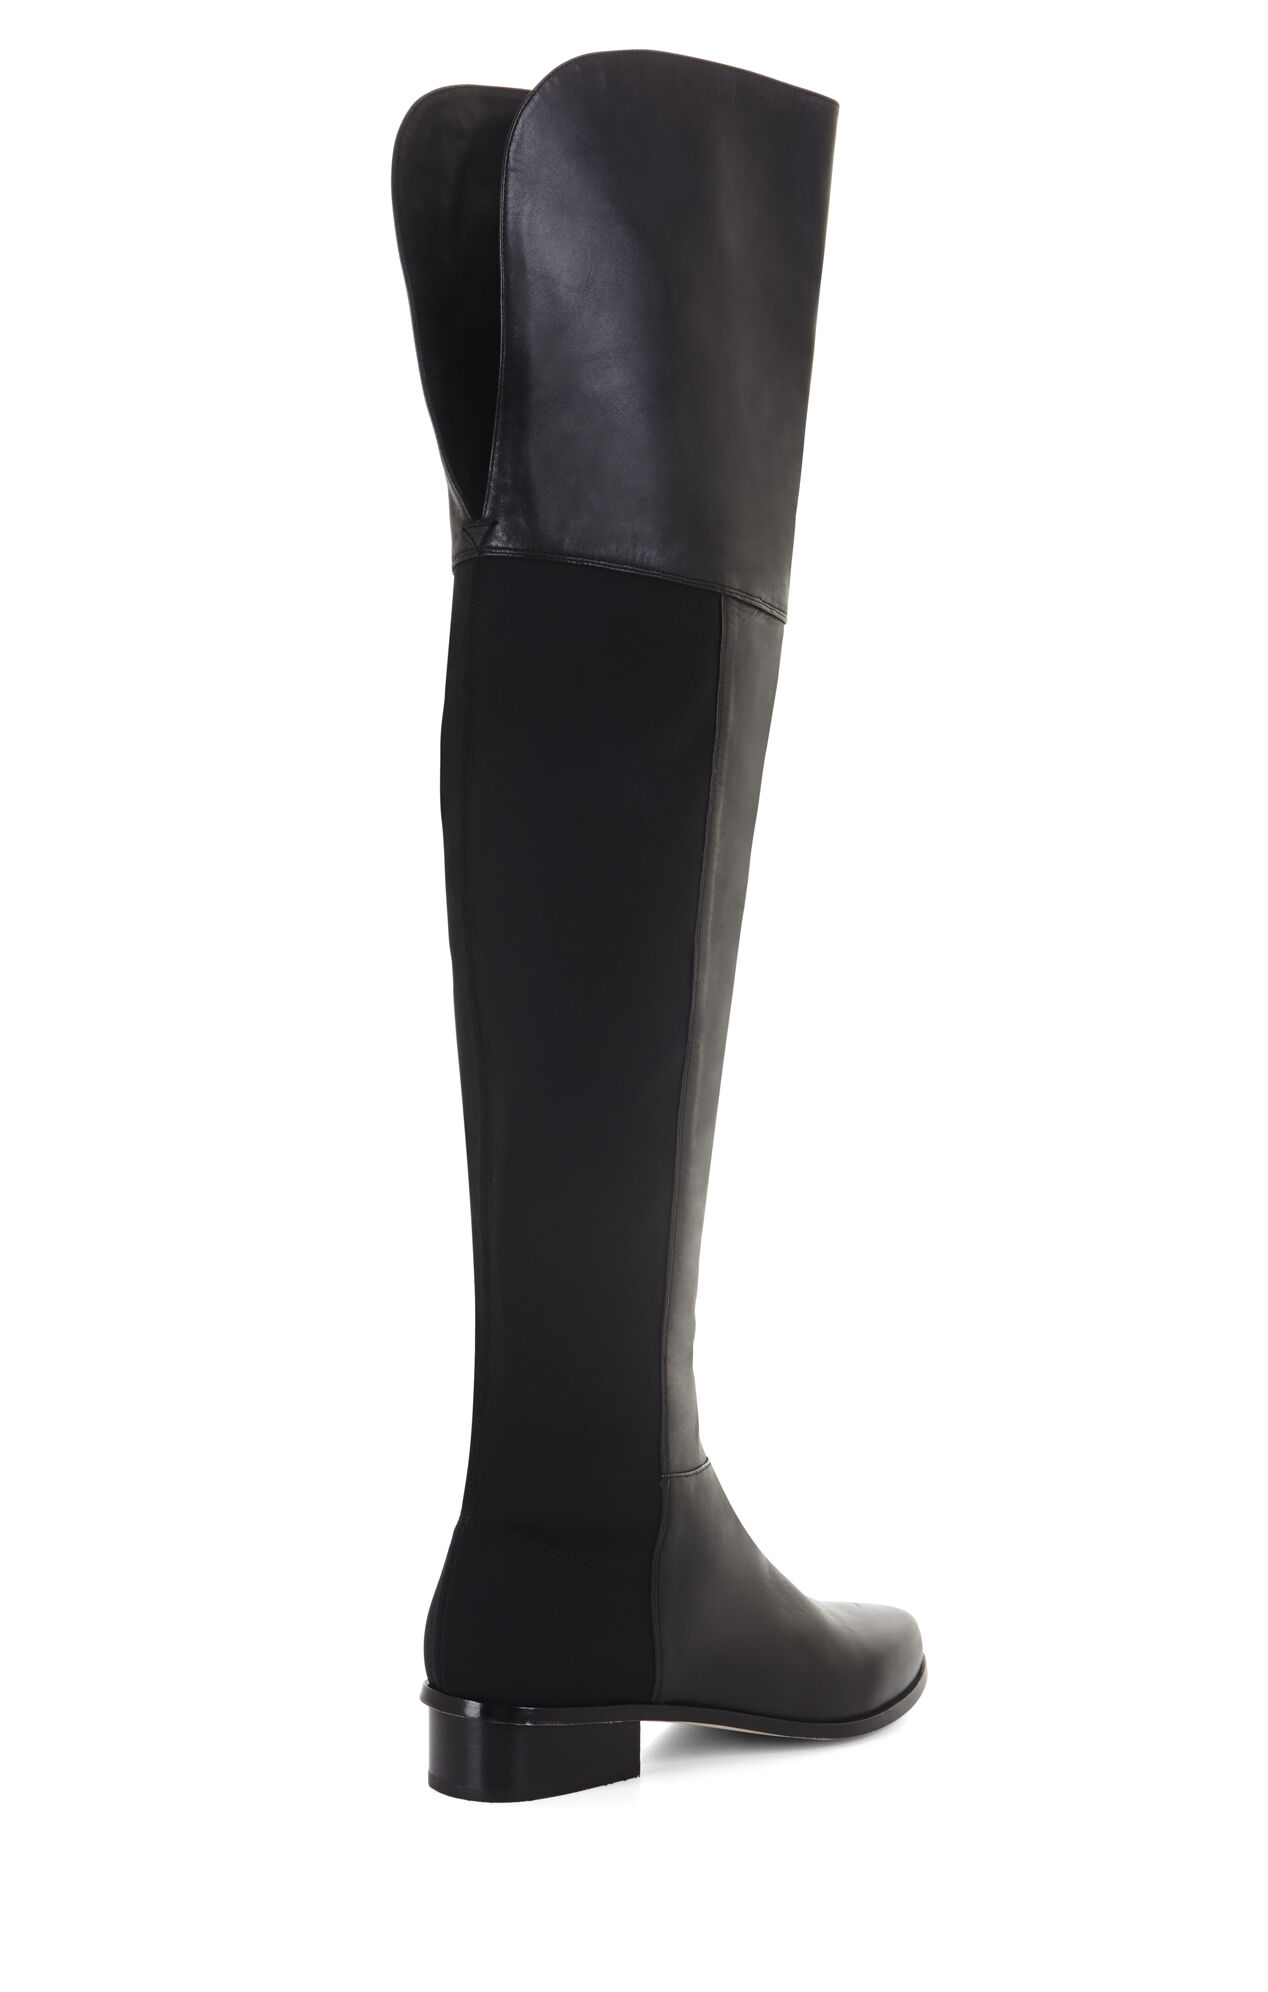 BCBGMAXAZRIA Slink Over-the-Knee Day Boot | BCBG.com